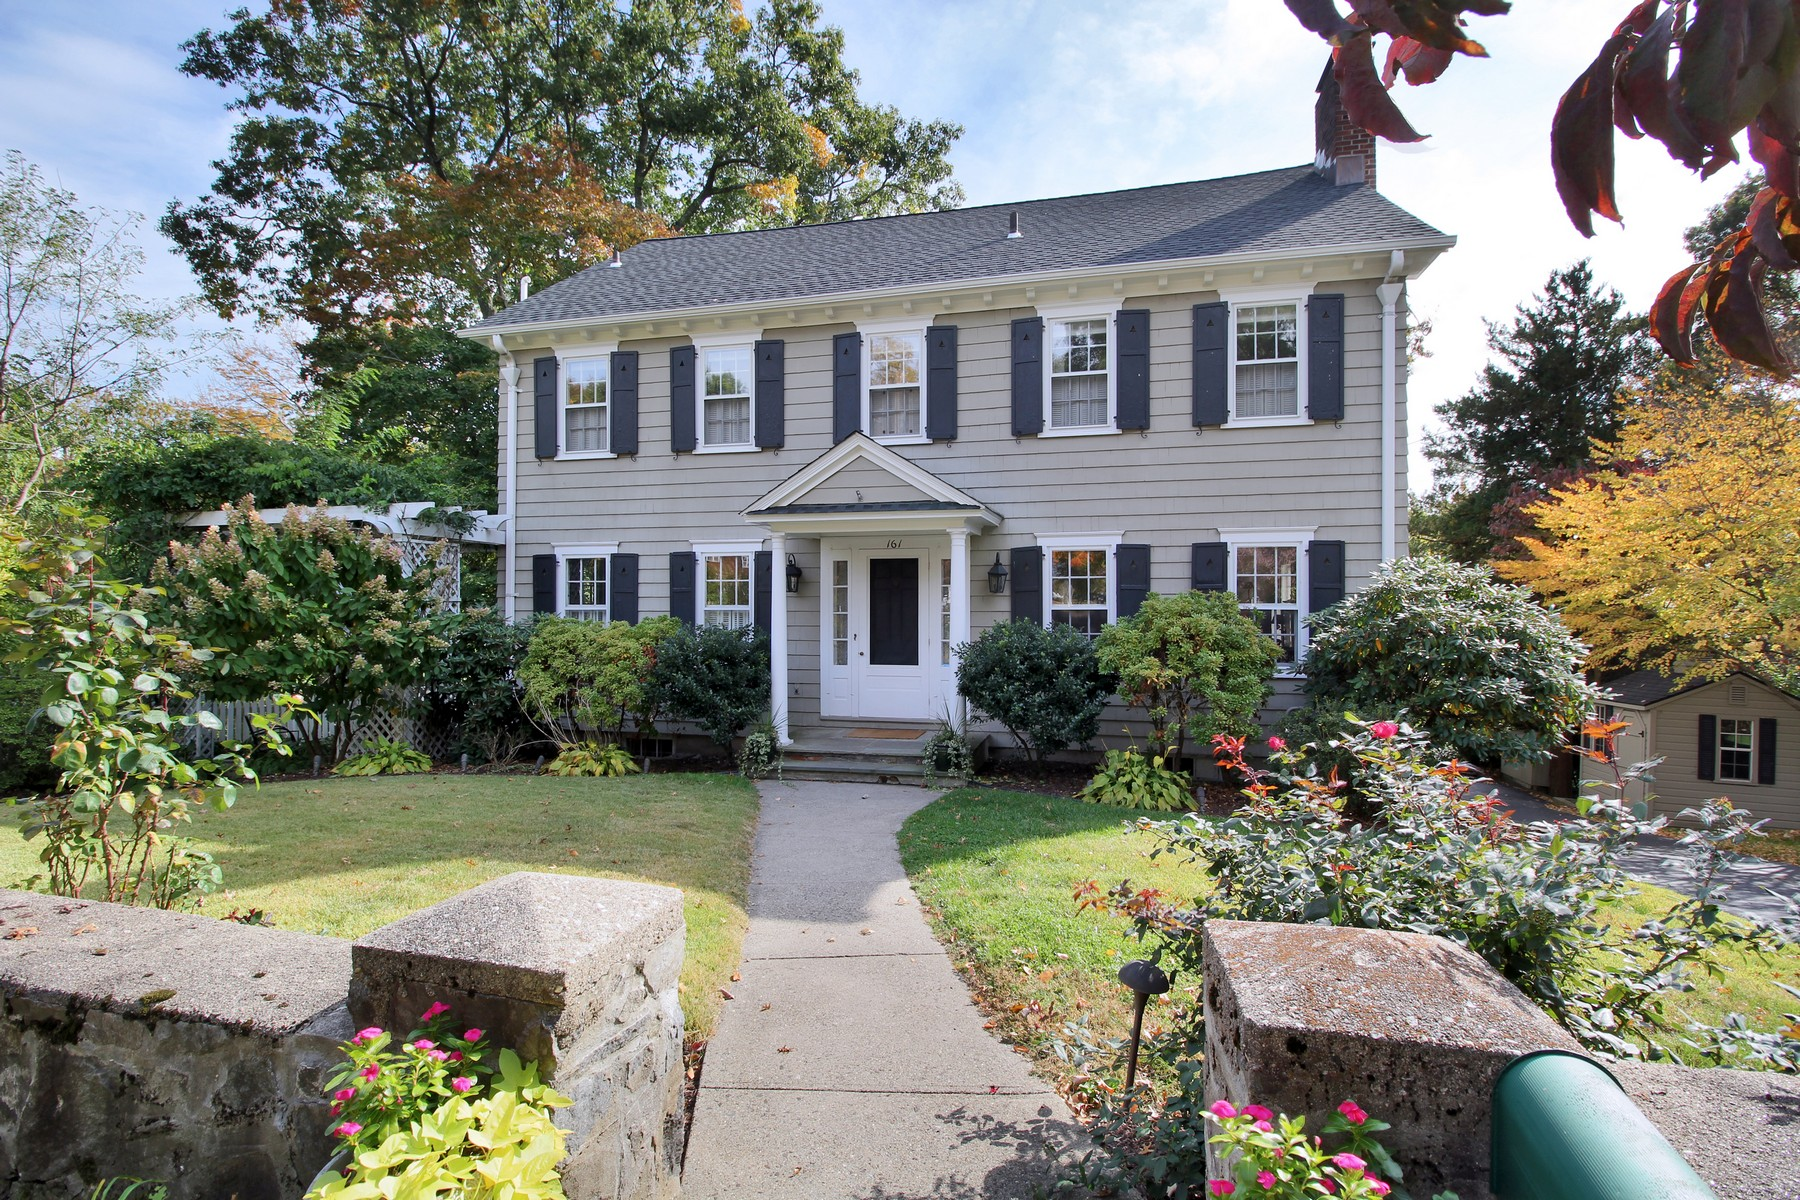 Property For Sale at Classic New England Center Hall Colonial on Desirable Tree-Lined Stratfield Stre